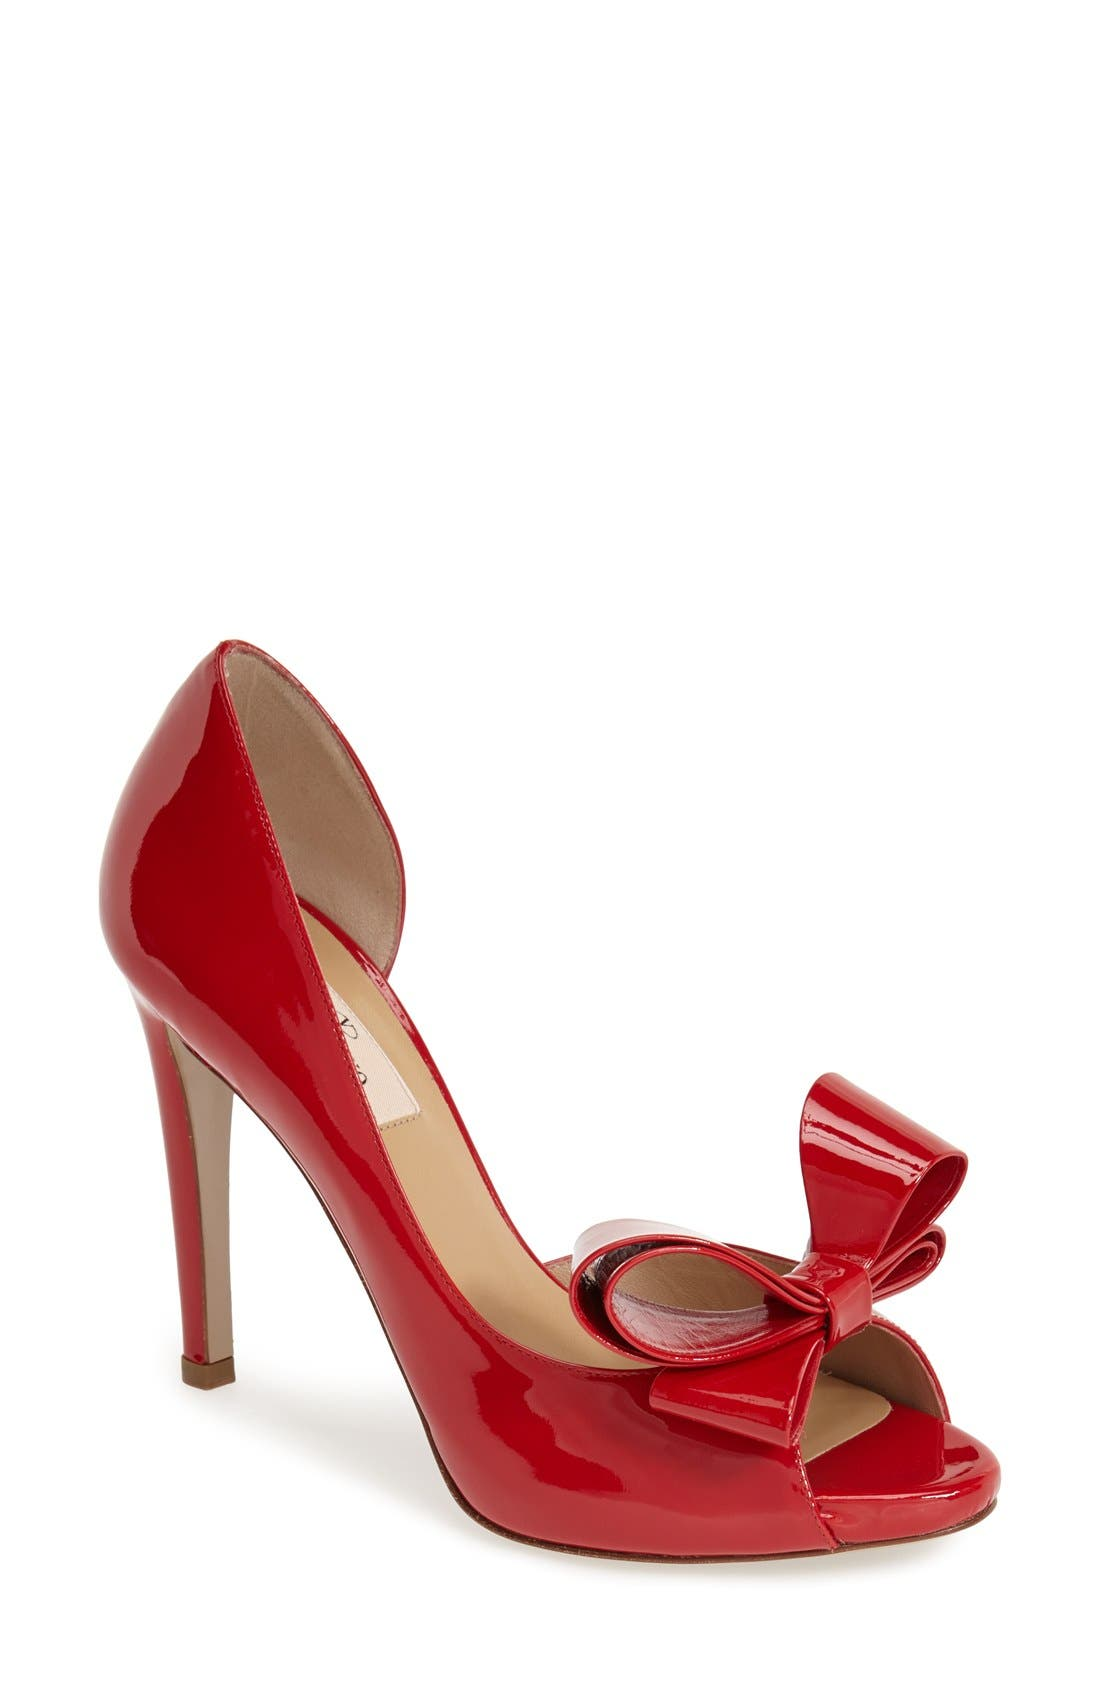 Couture Bow d'Orsay Pump,                         Main,                         color, Red Patent